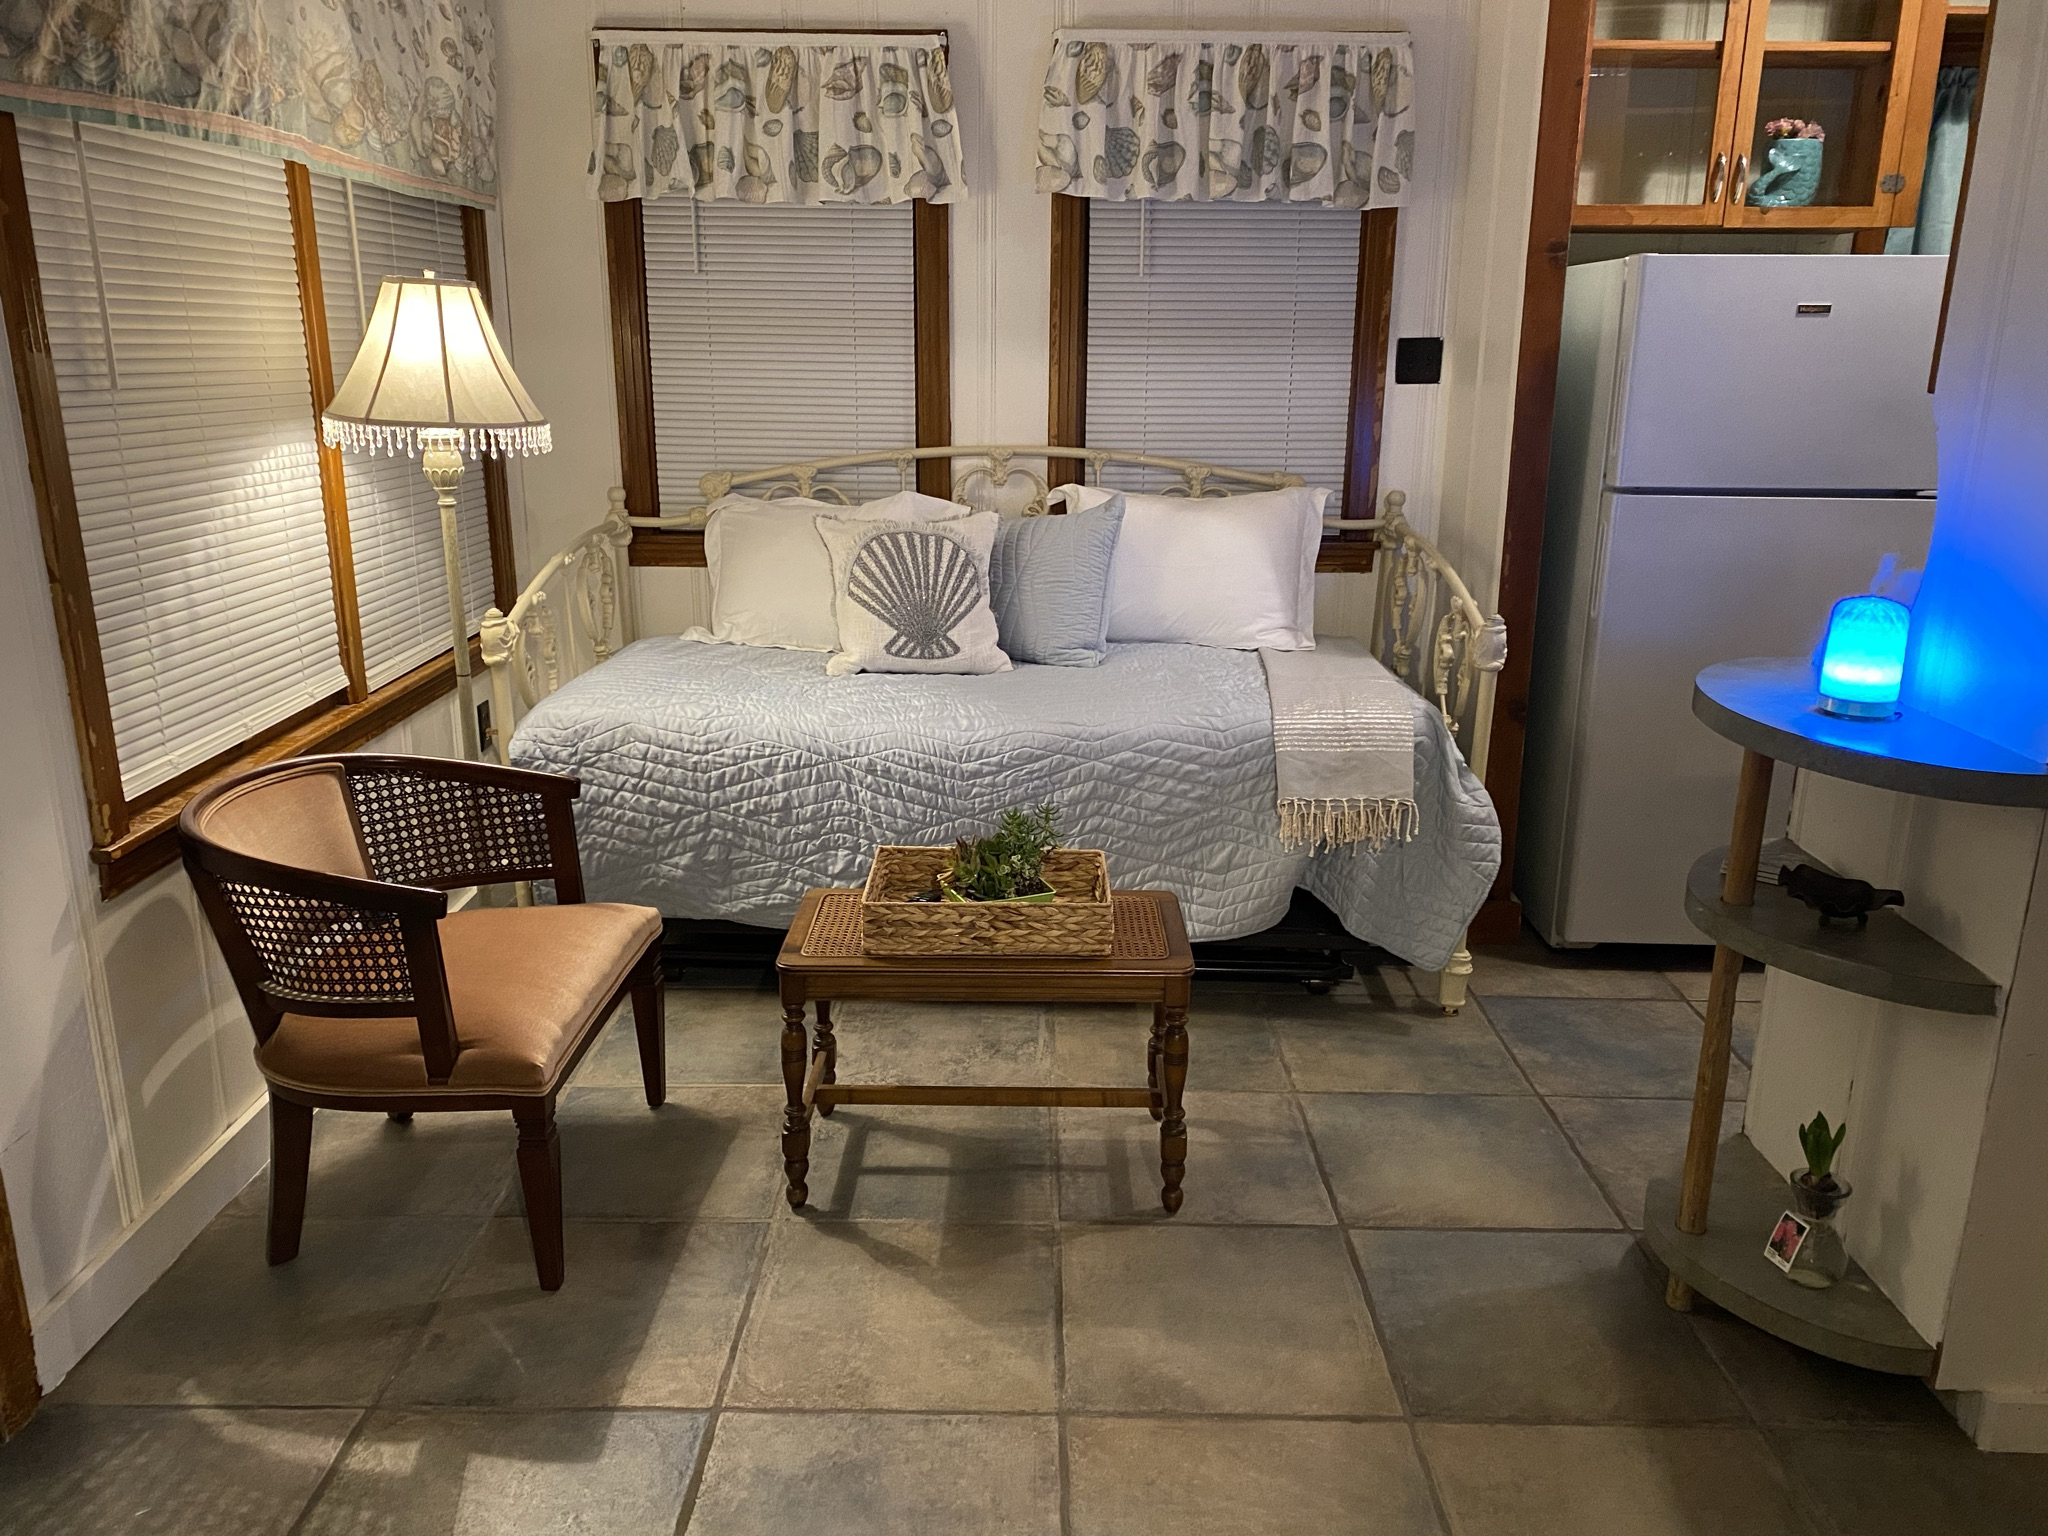 Sitting area with day bed and trundle bed